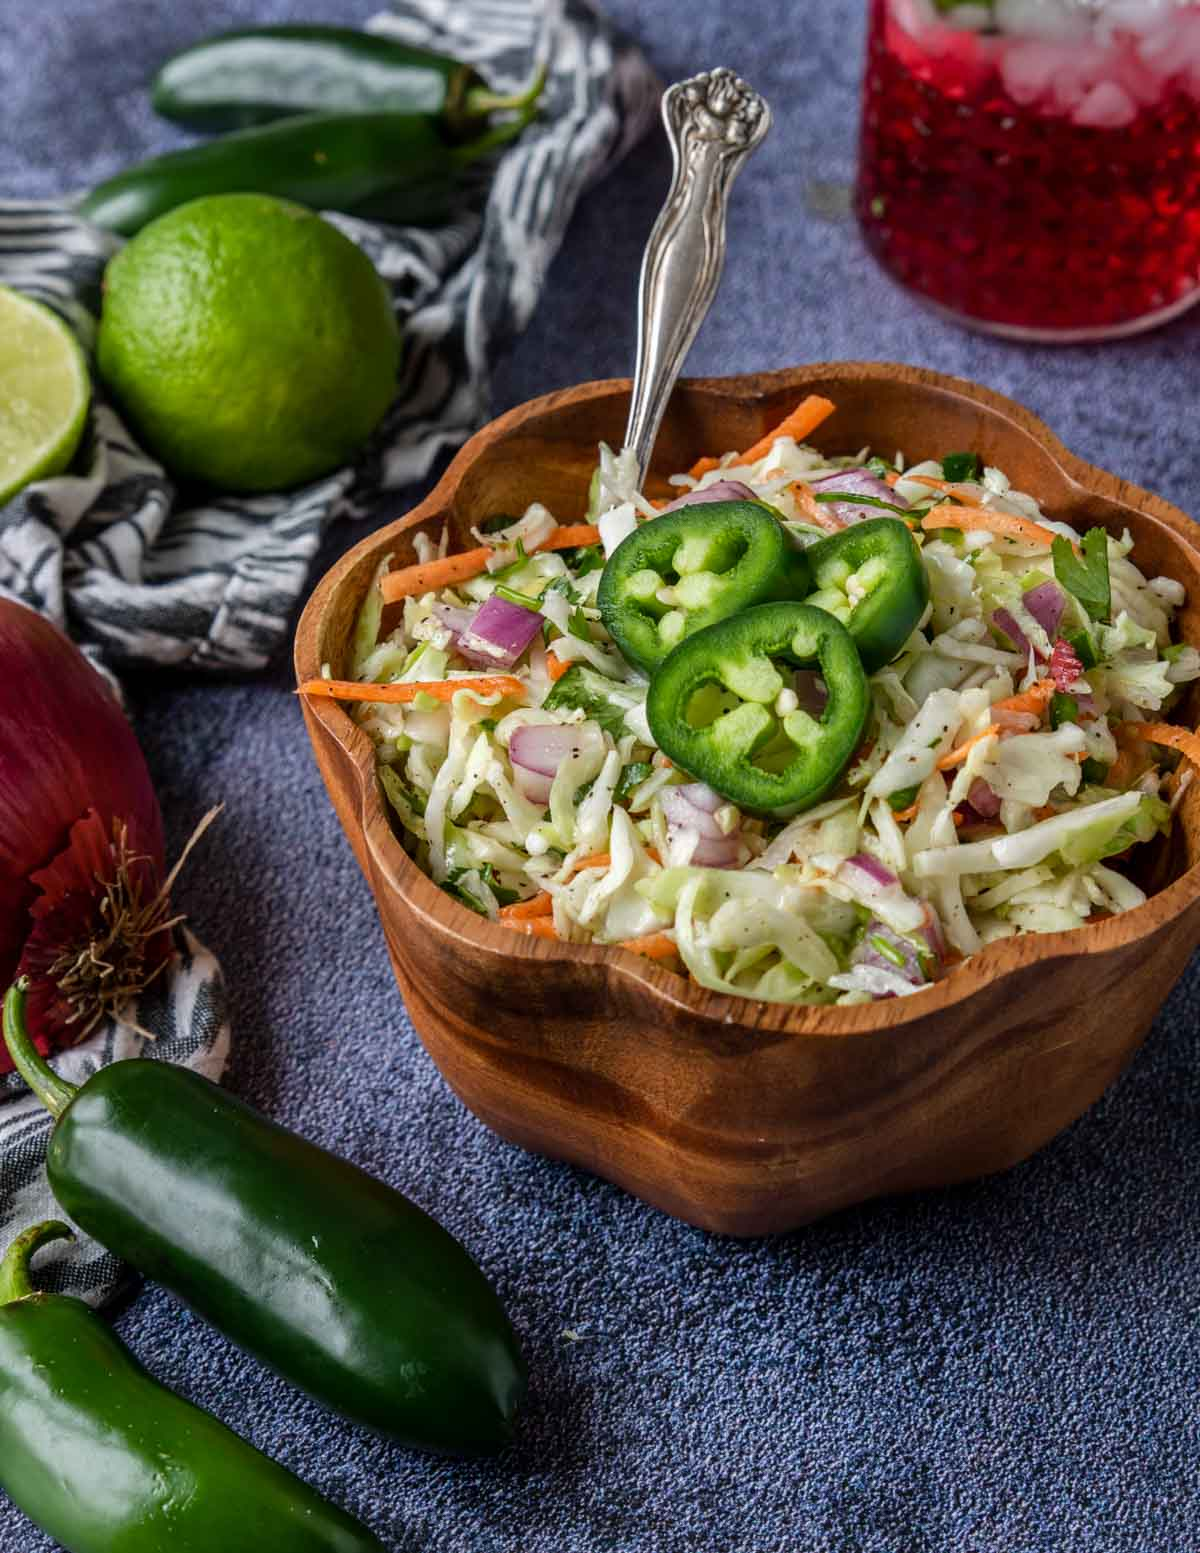 cilantro lime slaw topped with jalapeno in a wooden bowl